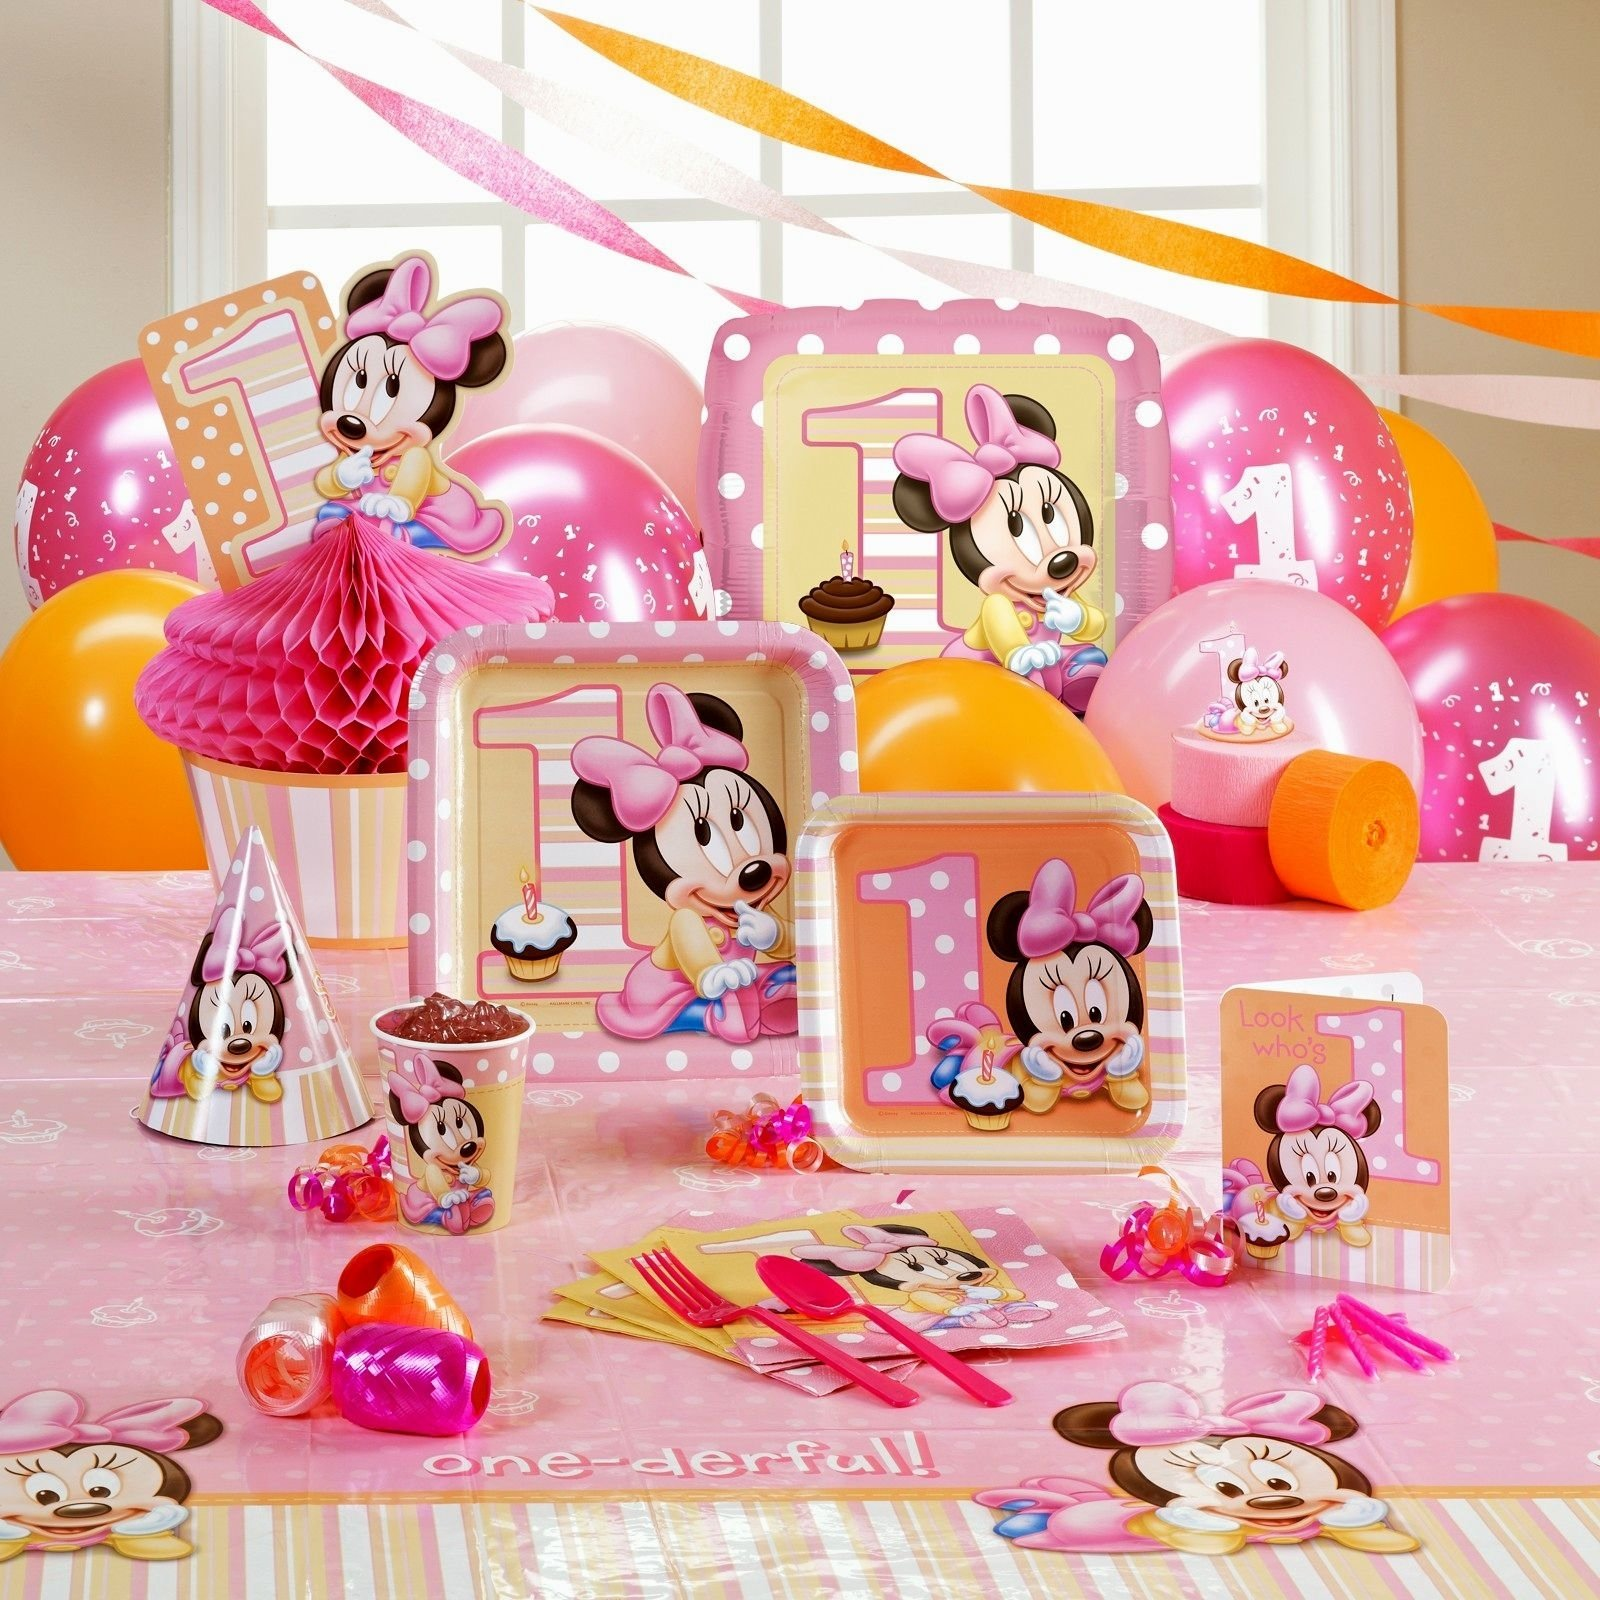 10 Lovely Baby Girl 1St Birthday Party Ideas baby girl first birthday party ideas decorating of party 2021